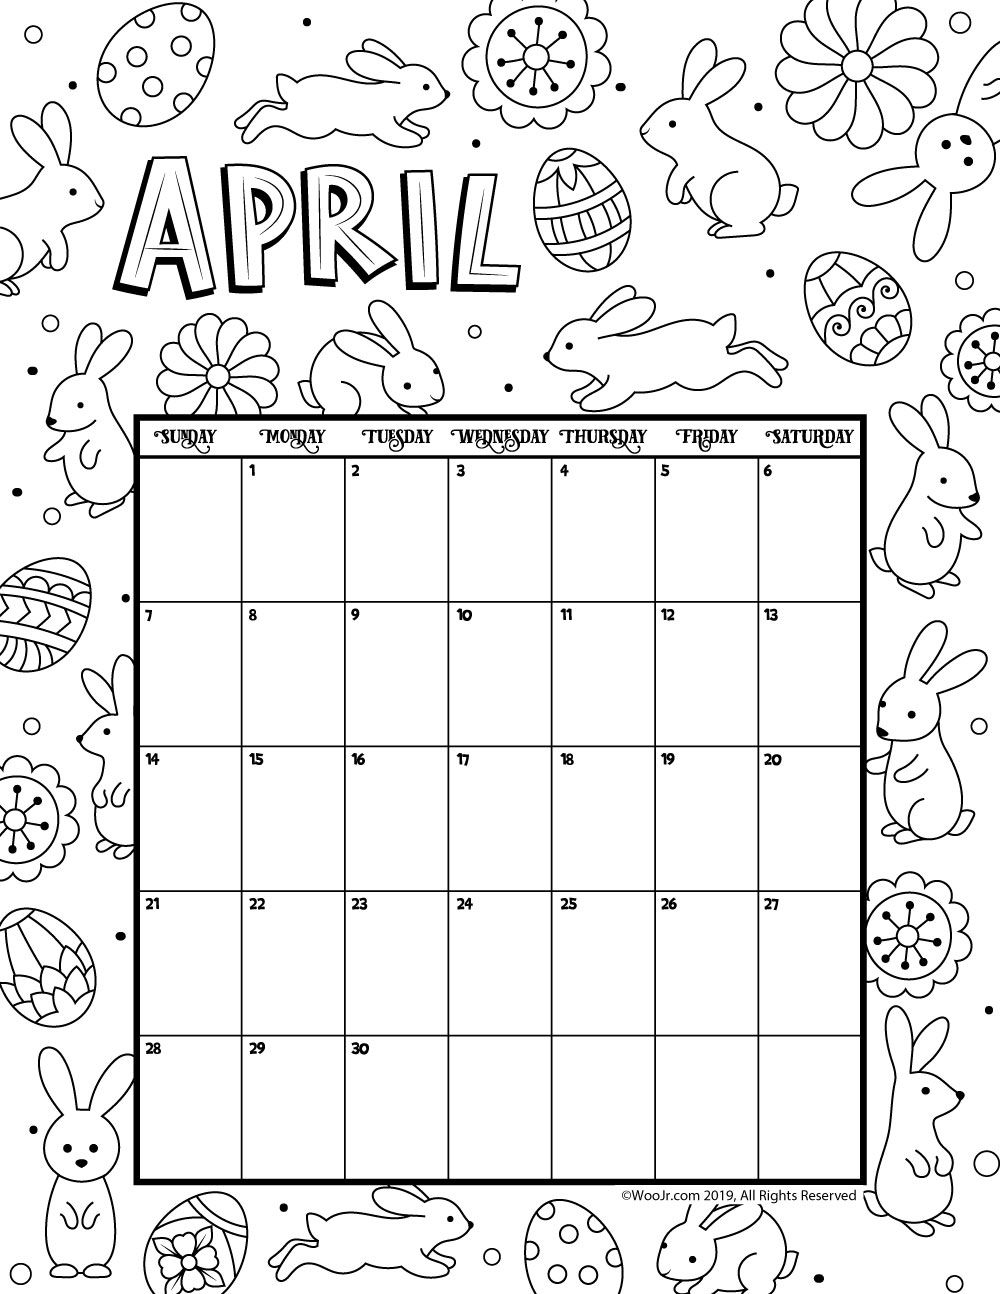 April 2019 Coloring Calendar Kids Calendar Calendar Pages Calendar